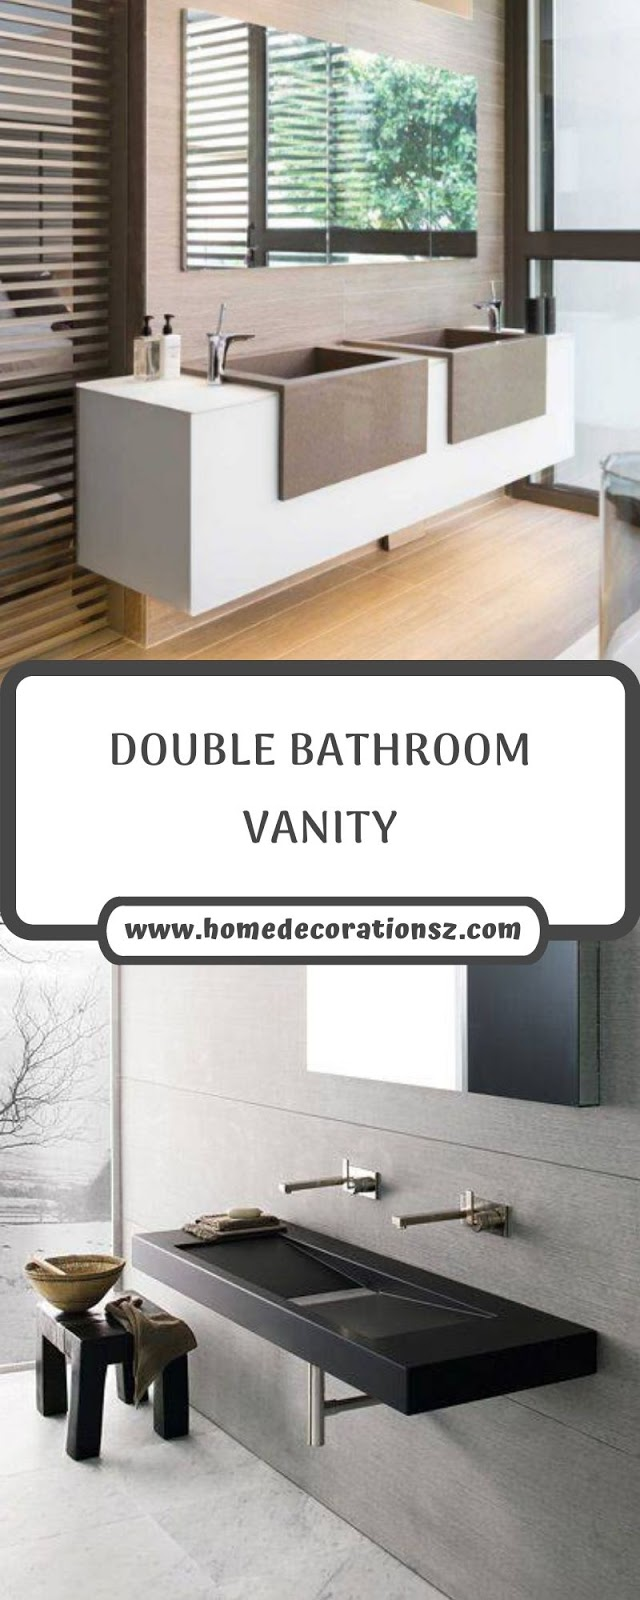 DOUBLE BATHROOM VANITY